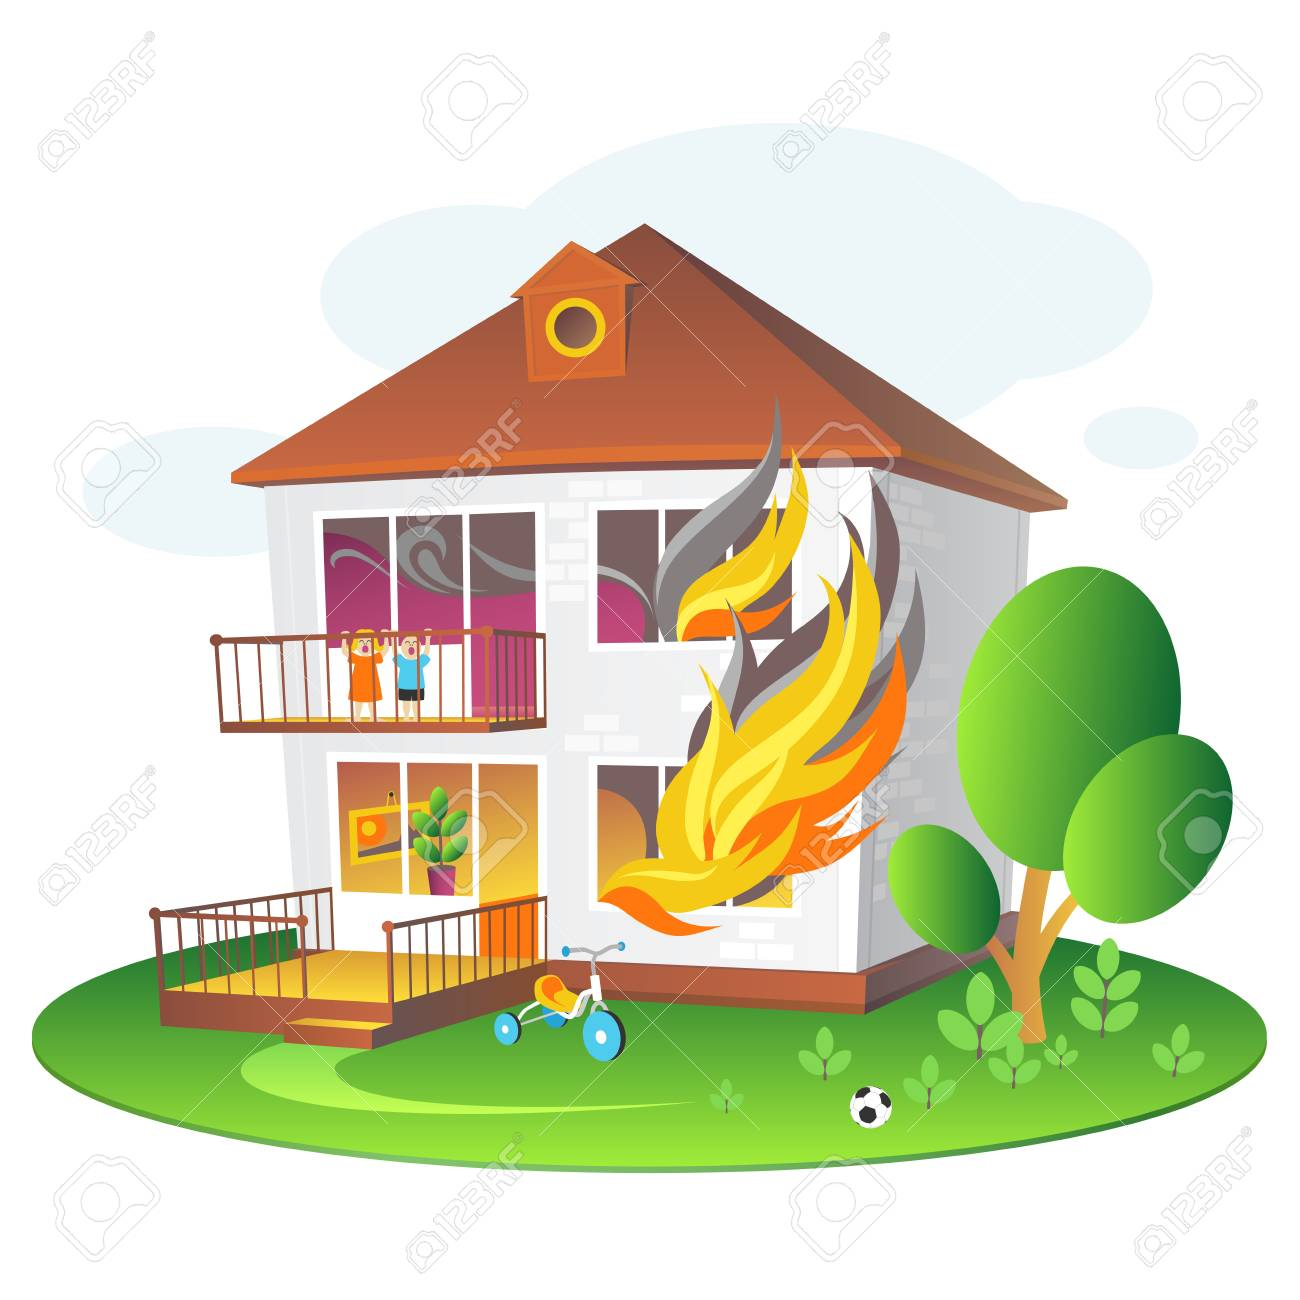 Burning house clipart 6 » Clipart Station.